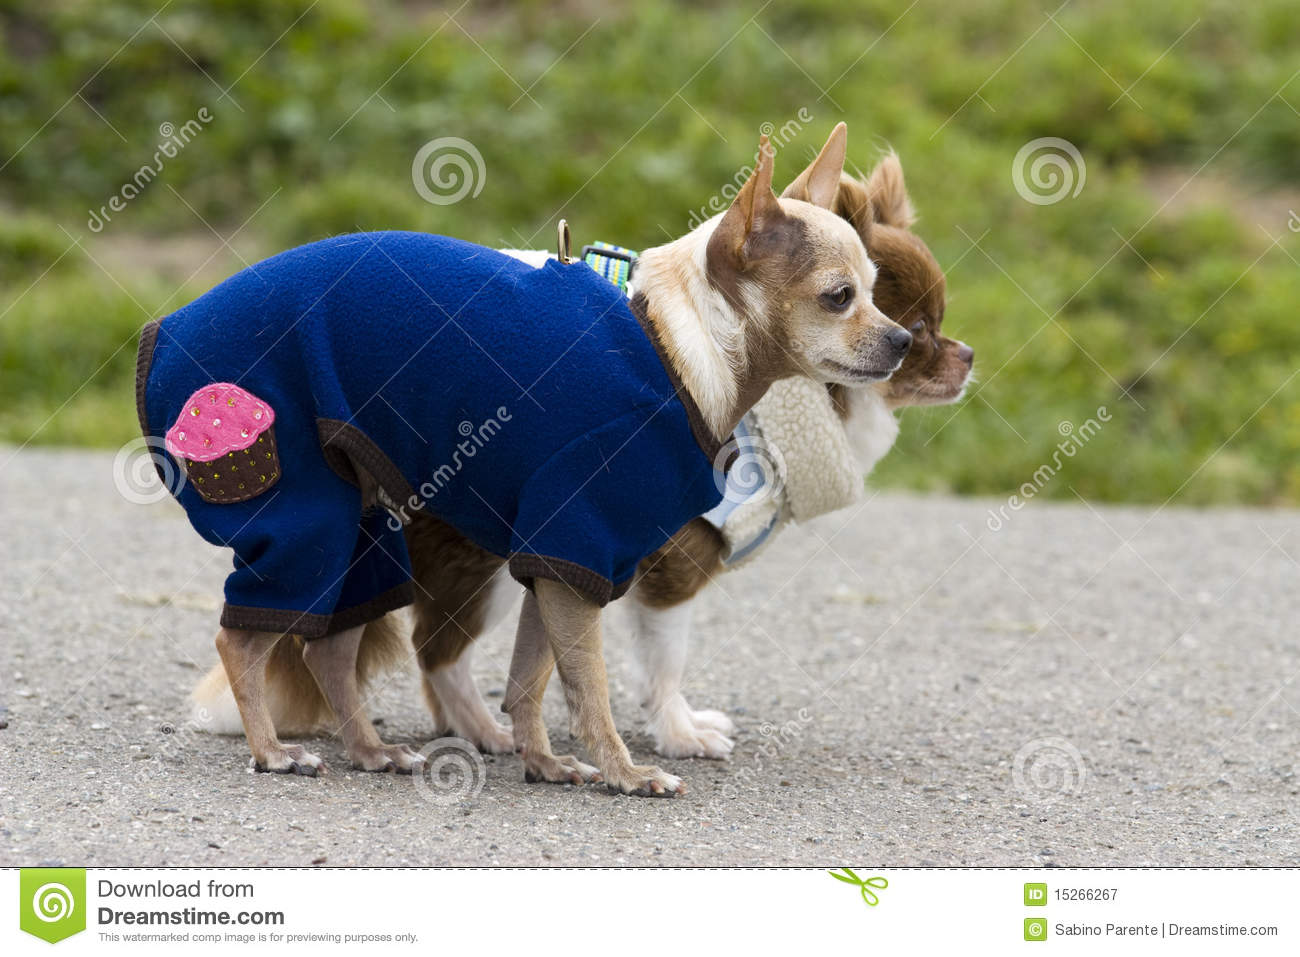 Pretty Dogs Royalty Free Stock Photography - Image: 15266267: dreamstime.com/royalty-free-stock-photography-pretty-dogs...